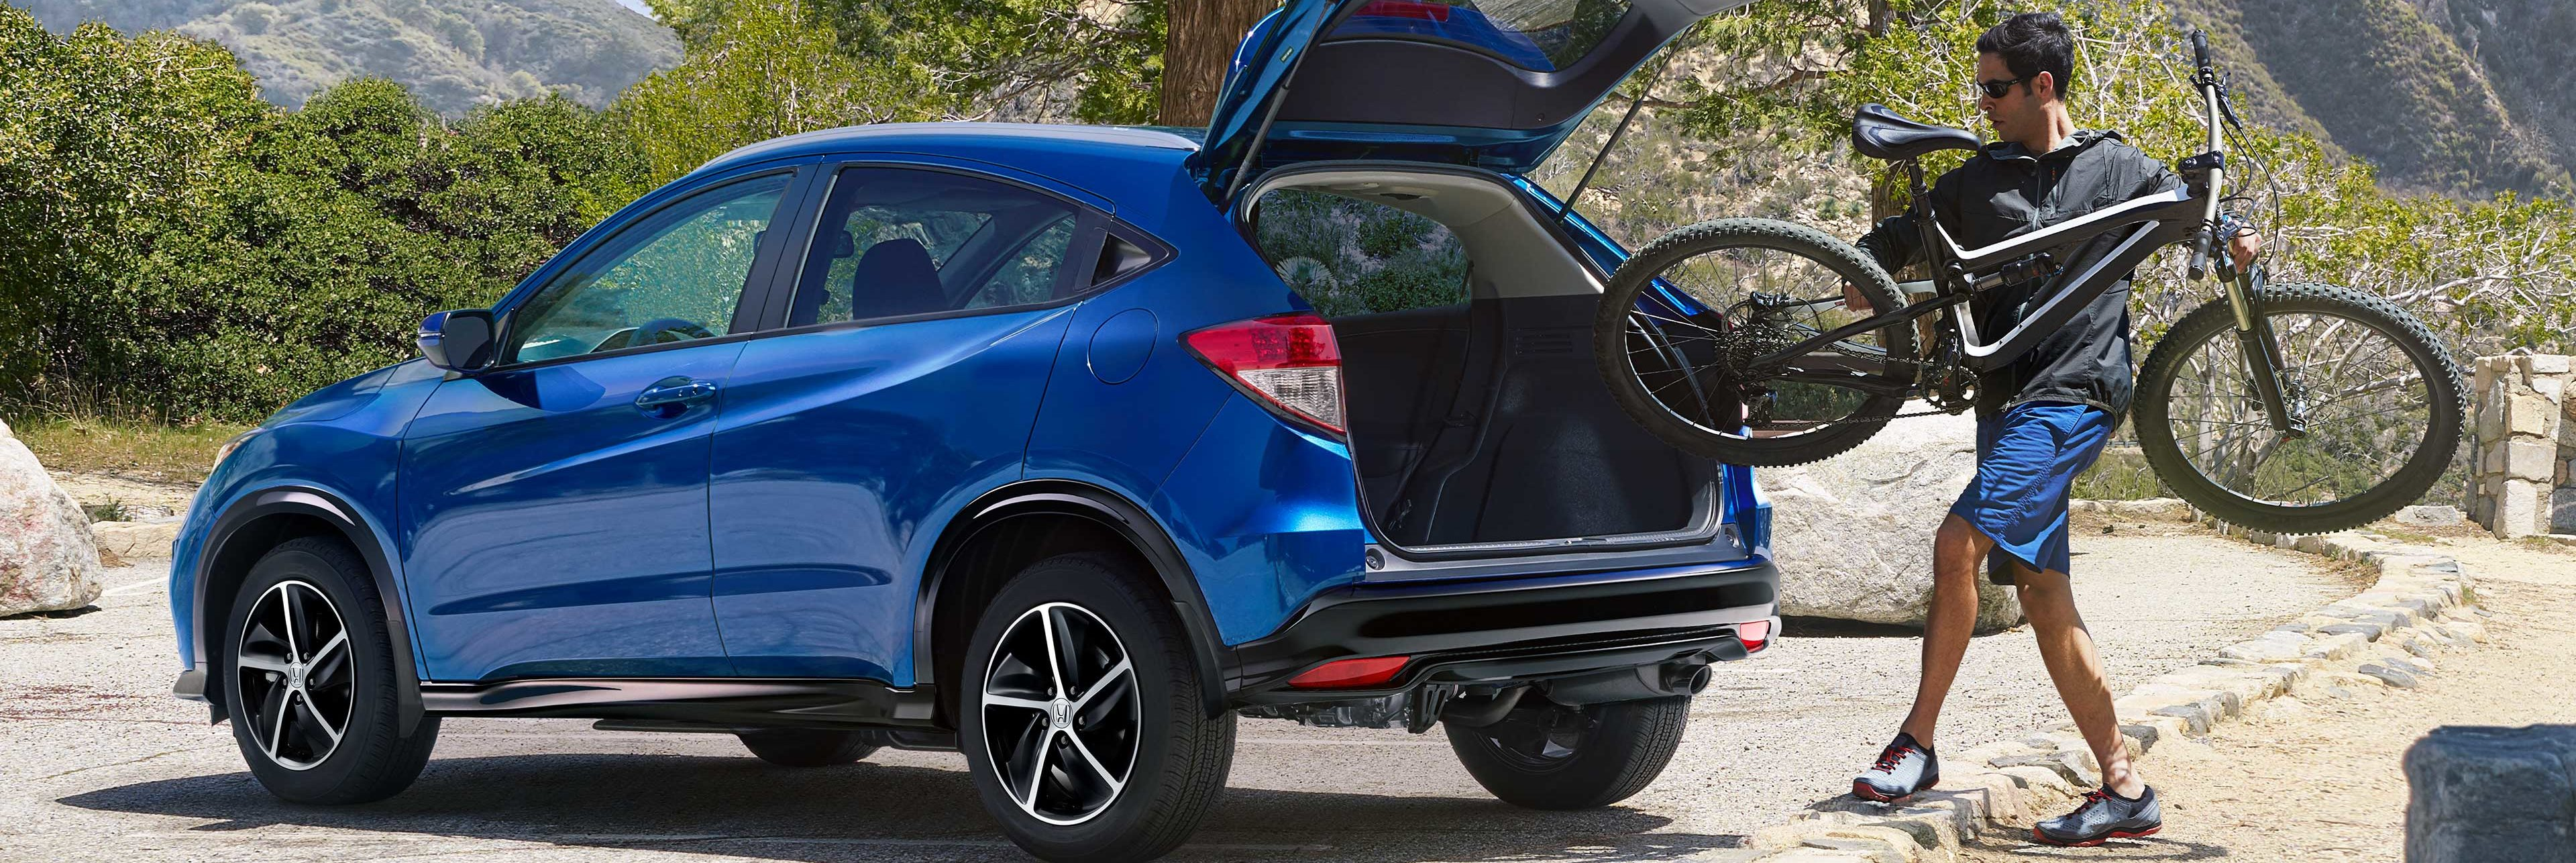 Shot of man placing bicycle into the back of a 2020 HR-V shown in blue